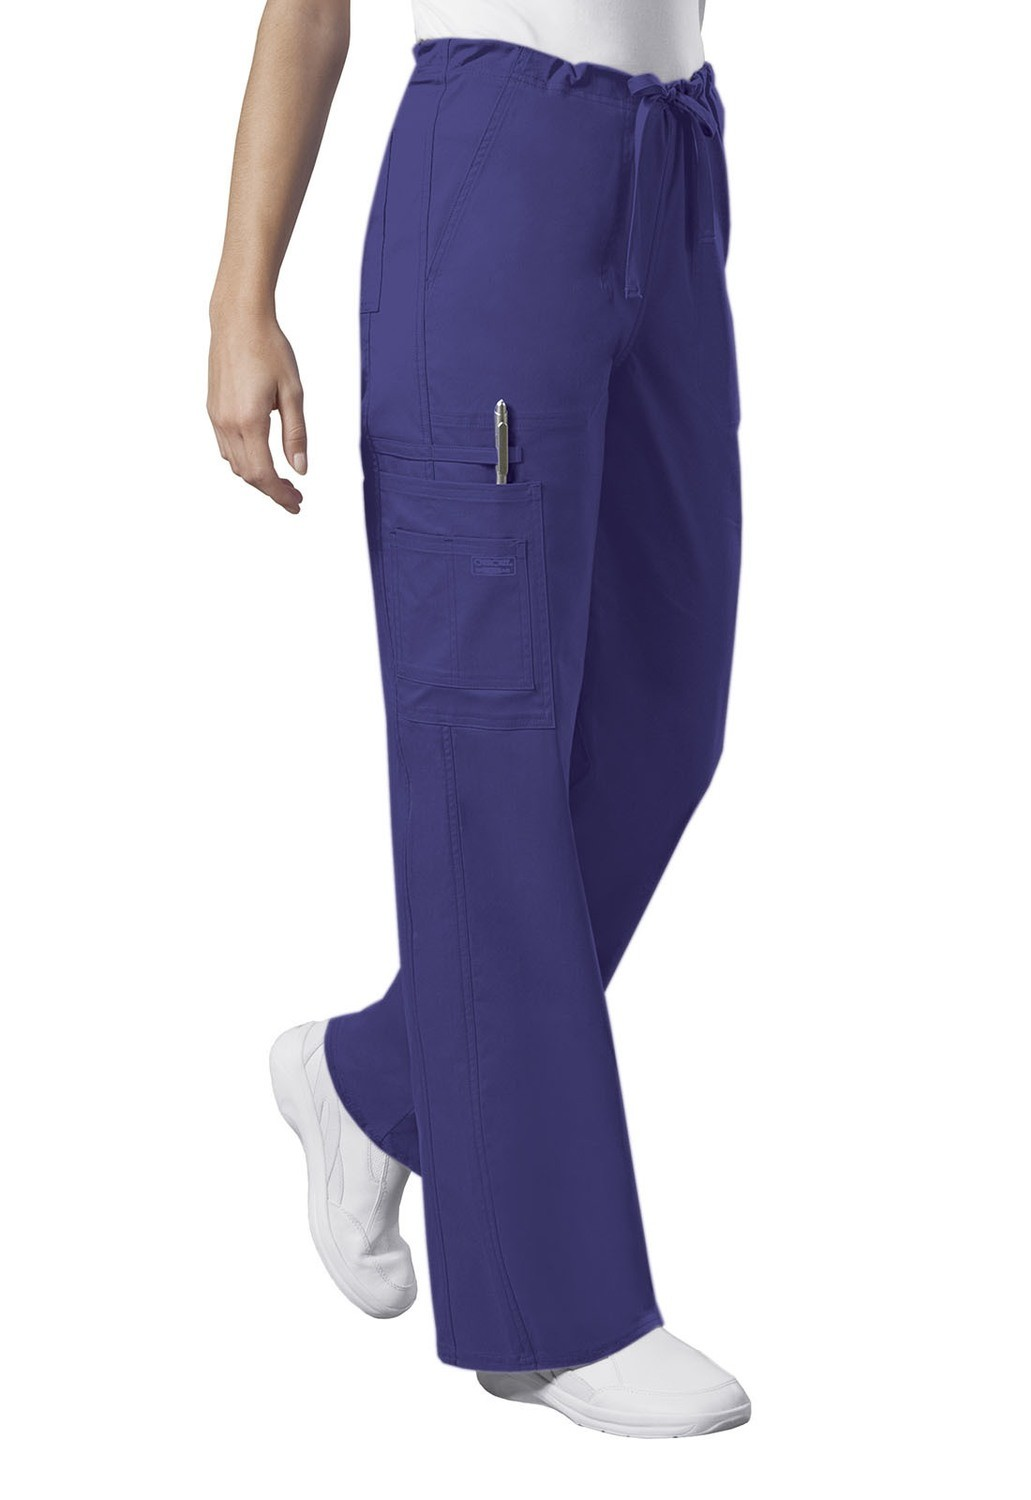 Pantalone Unisex CHEROKEE CORE STRETCH 4043 Colore Grape